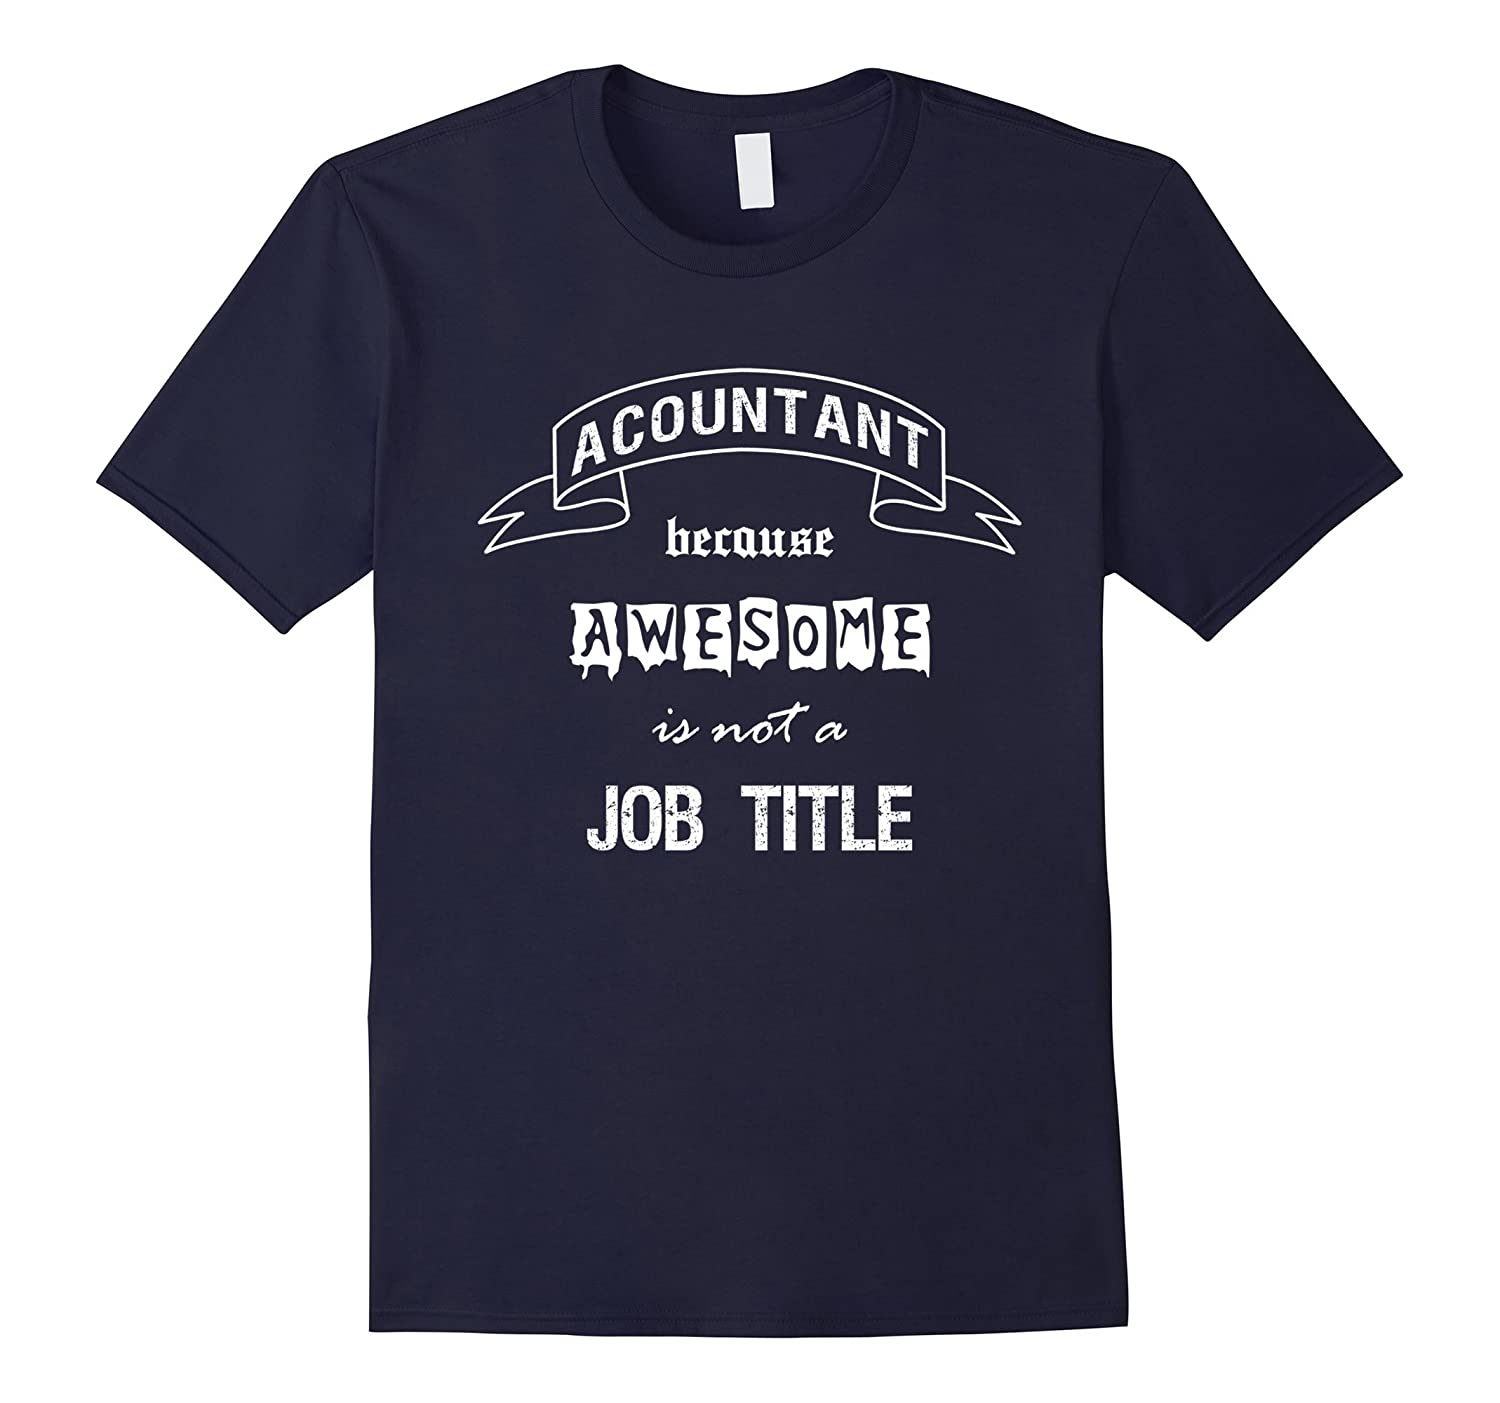 Accountant Because Awesome Is Not A Job Title Funny T Shirt-TD